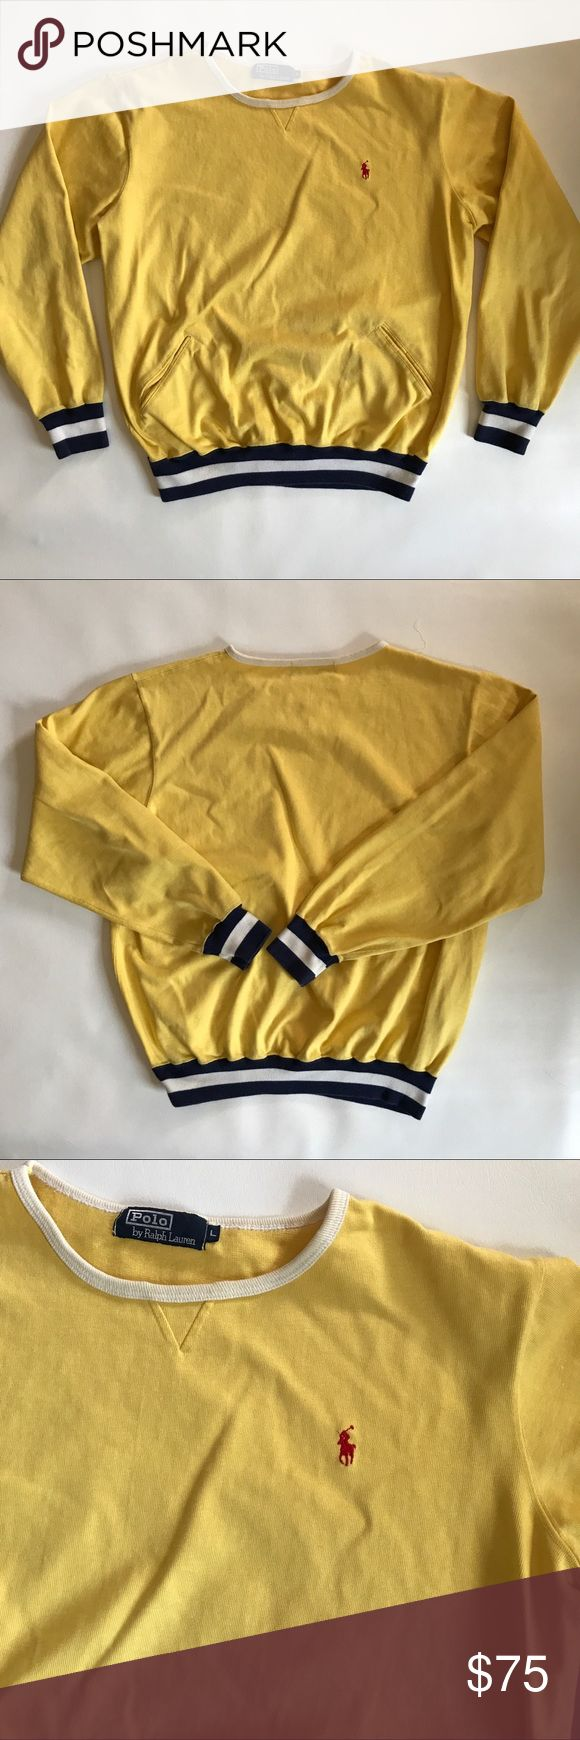 Polo by Ralph Lauren Vintage Yellow Sweatshirt This is an a-mazing, vintage, yellow Polo by Ralph Lauren sweatshirt. It's not exactly cropped, but it is shorter in style.  It is vintage so there are a few flaws shown in the last 3 pictures.  Small stain on the arm and pocket and the stitching is coming undone along the neck.  Yellow with blue and white band around hem.  Red embroidered horse. Size large.  Bust flat 24.5, length 25.  100 cotton.  Total 90s! D50 Polo by Ralph Lauren Tops…